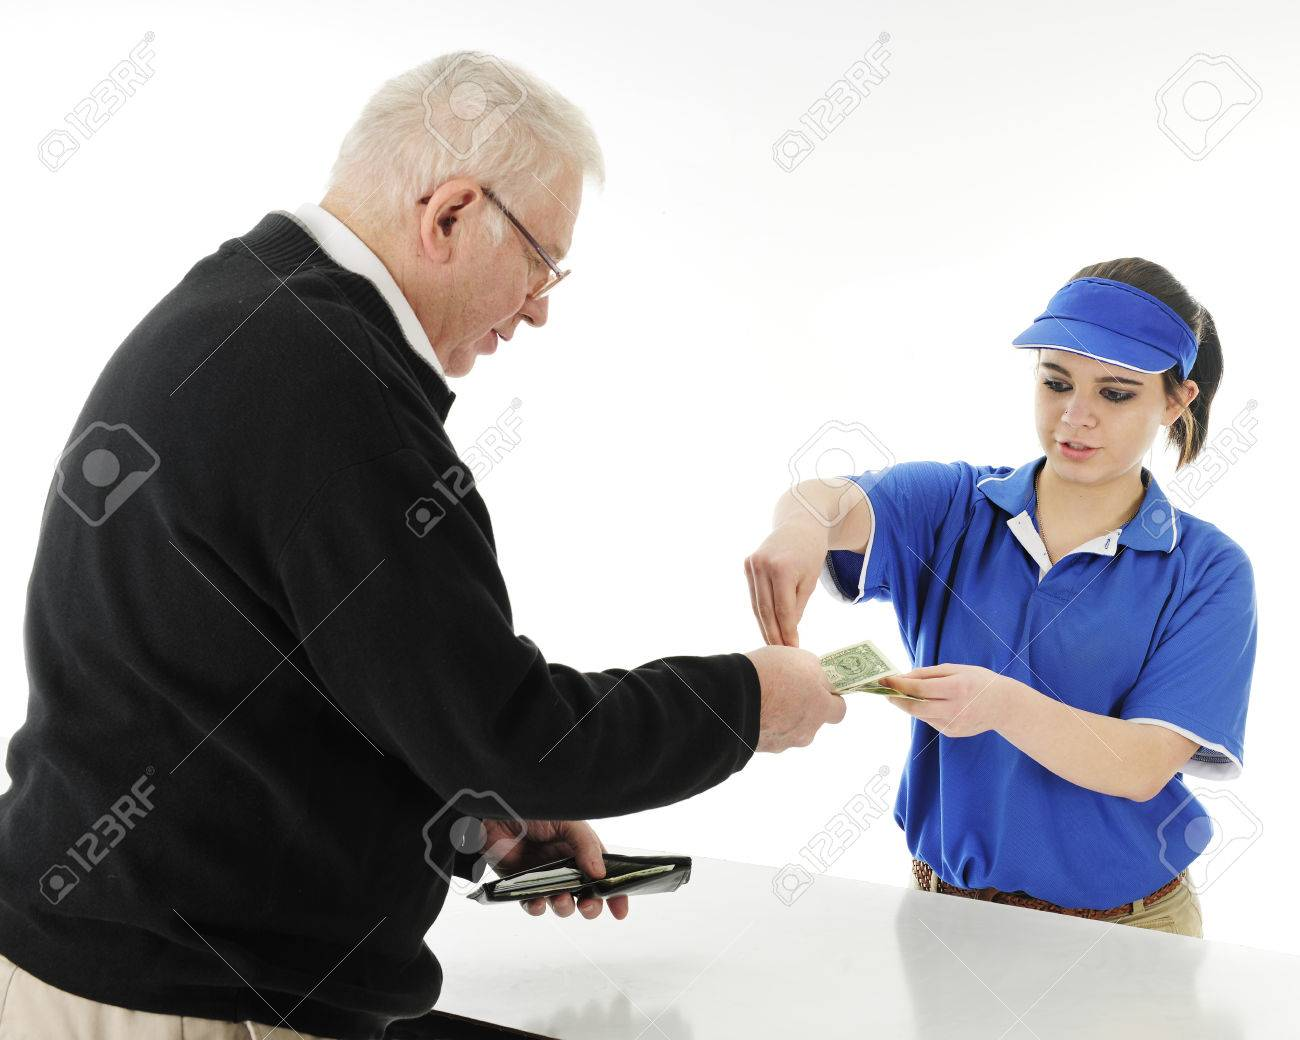 a teen fast food server returning change to a senior man customer a teen fast food server returning change to a senior man customer on a